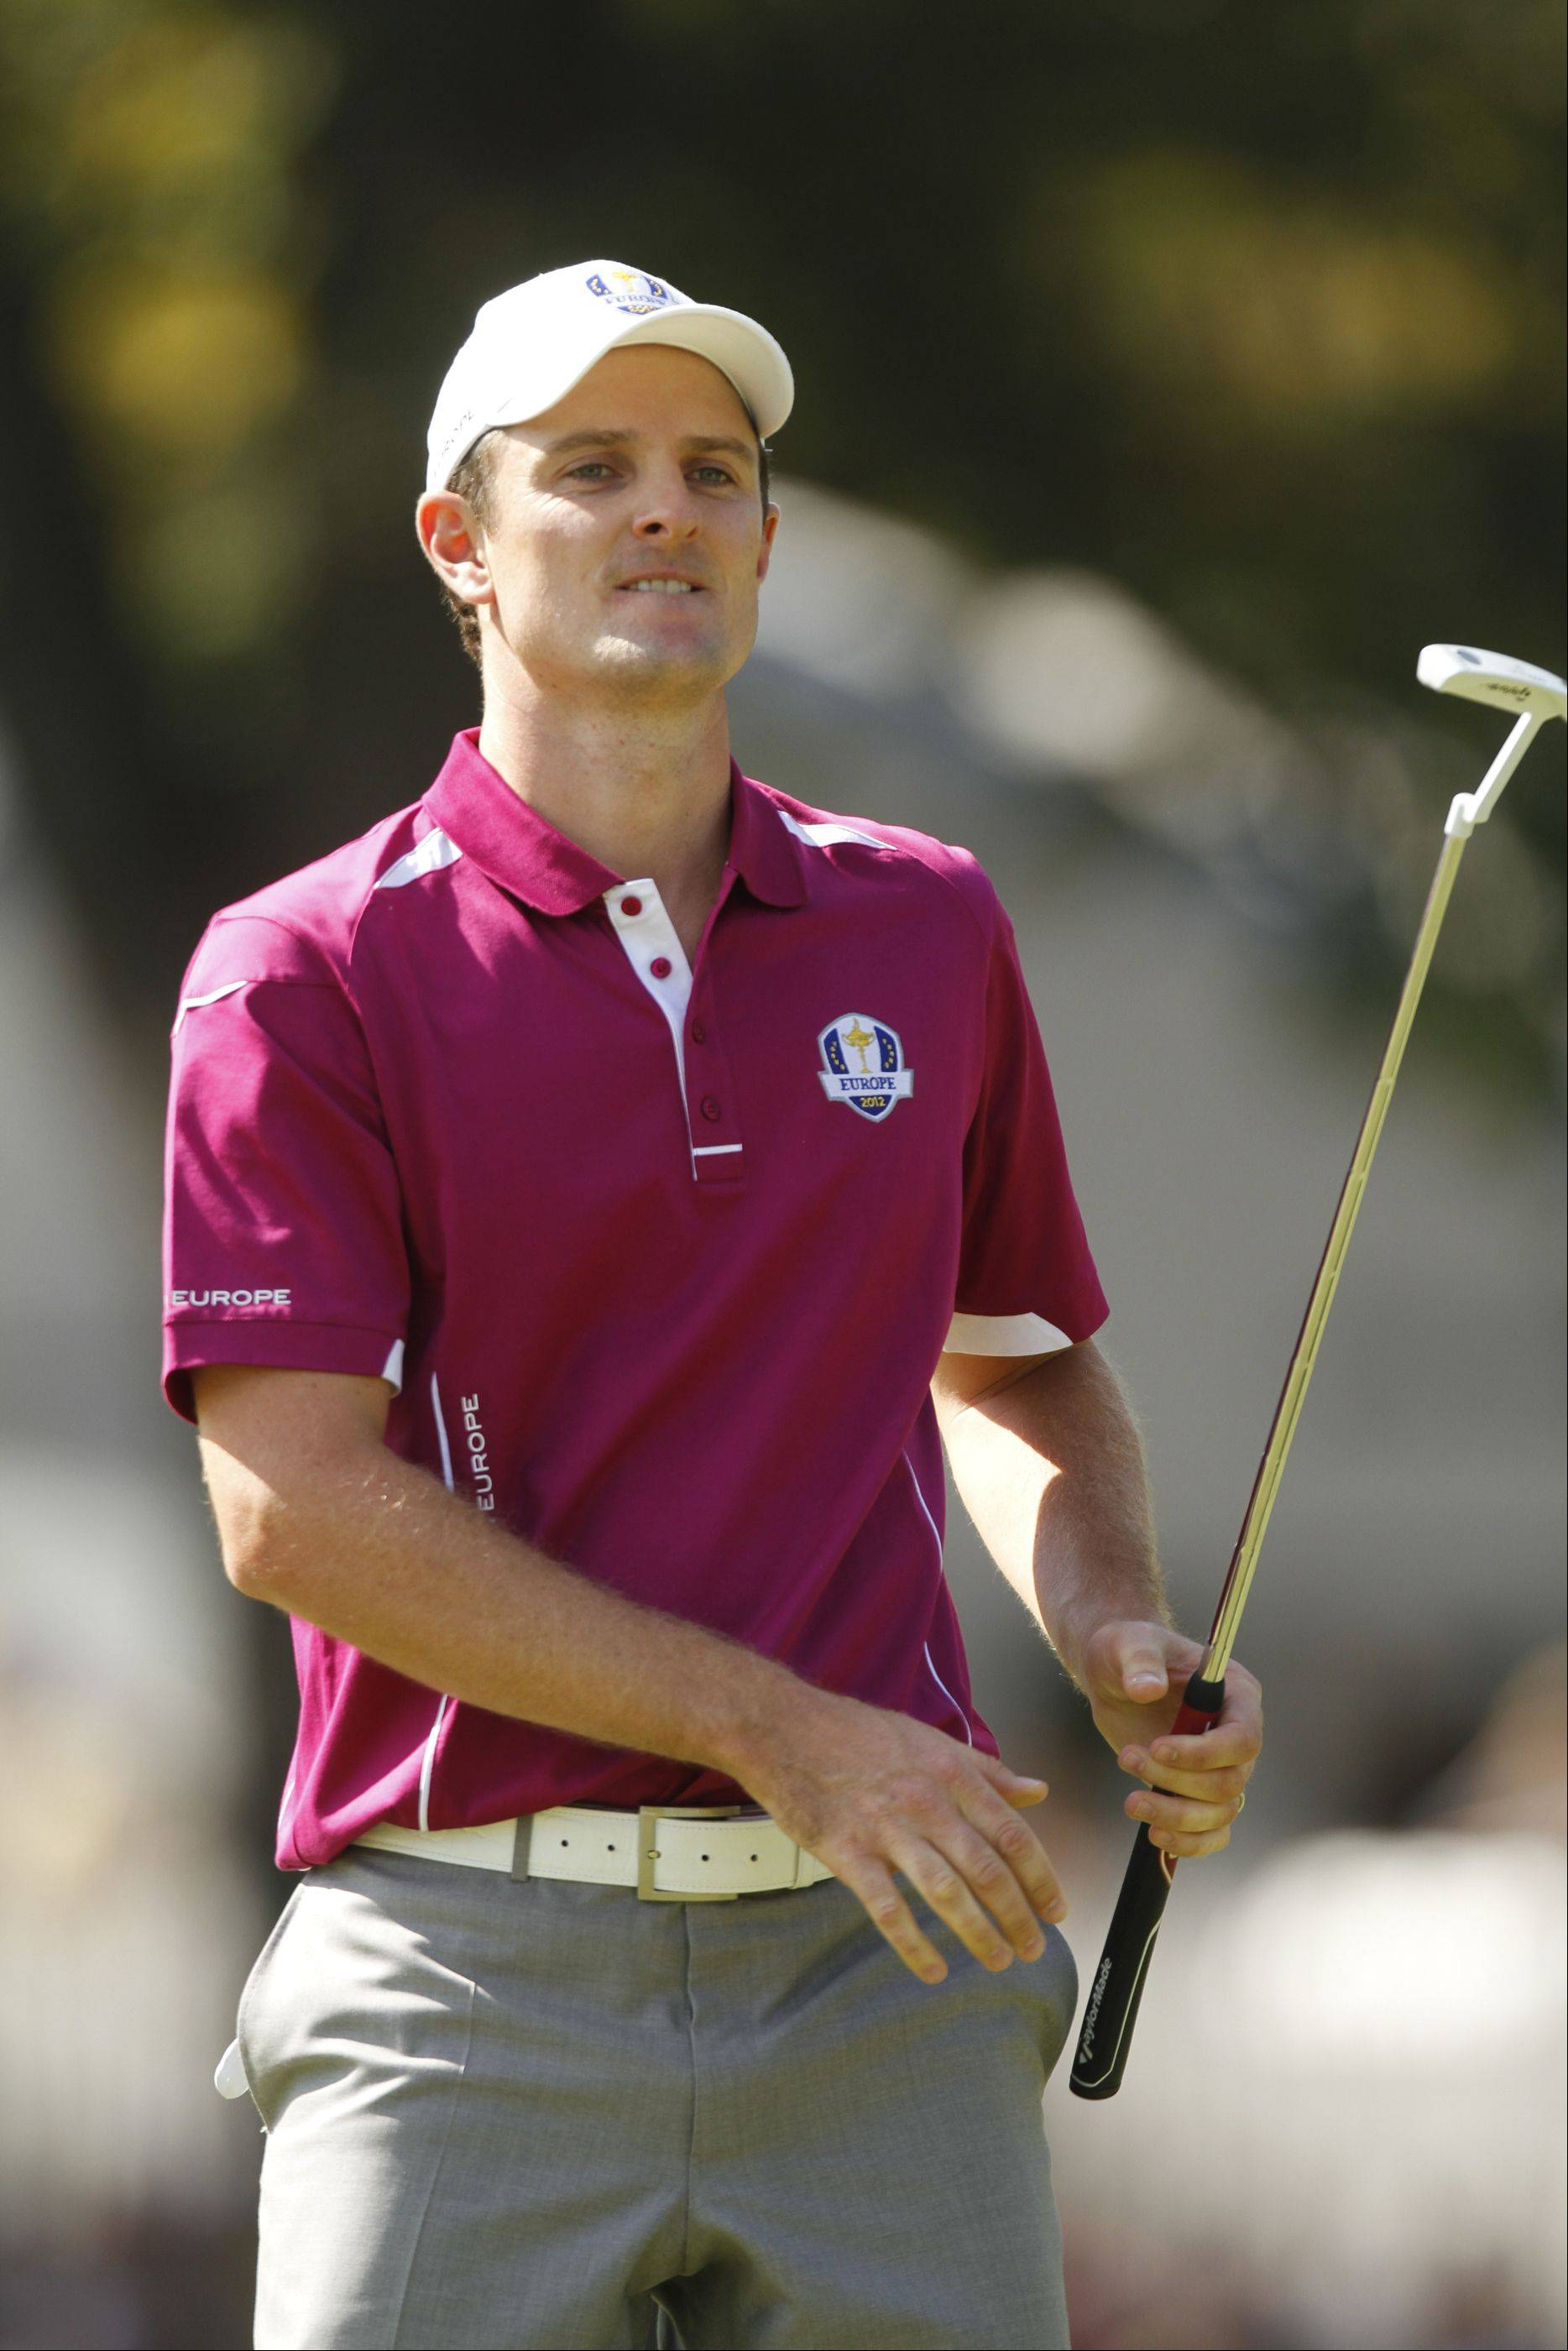 Justin Rose reacts after missing a birdie putt on the 18th hole Saturday morning during day 2 of the 2012 Ryder Cup at Medinah Country Club.